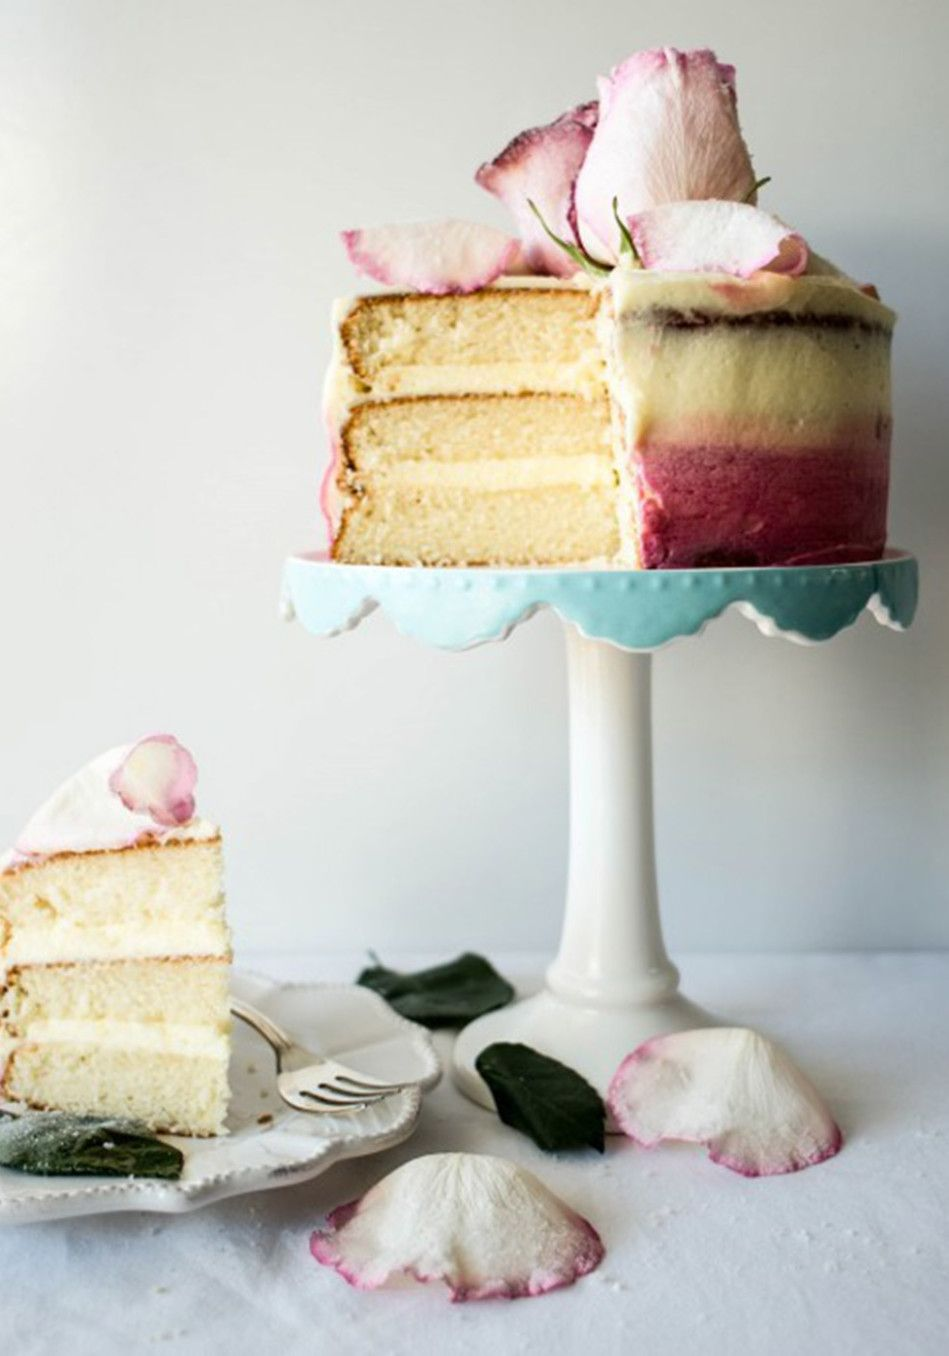 One reader asked if she could marry it. Another said it was so beautiful she might cry. Thalia Ho, who writes the blog Butter and Brioche, created her crystallized white rose cake with Valentine's Day in mind, and it certainly inspired her readers to pour on the love.